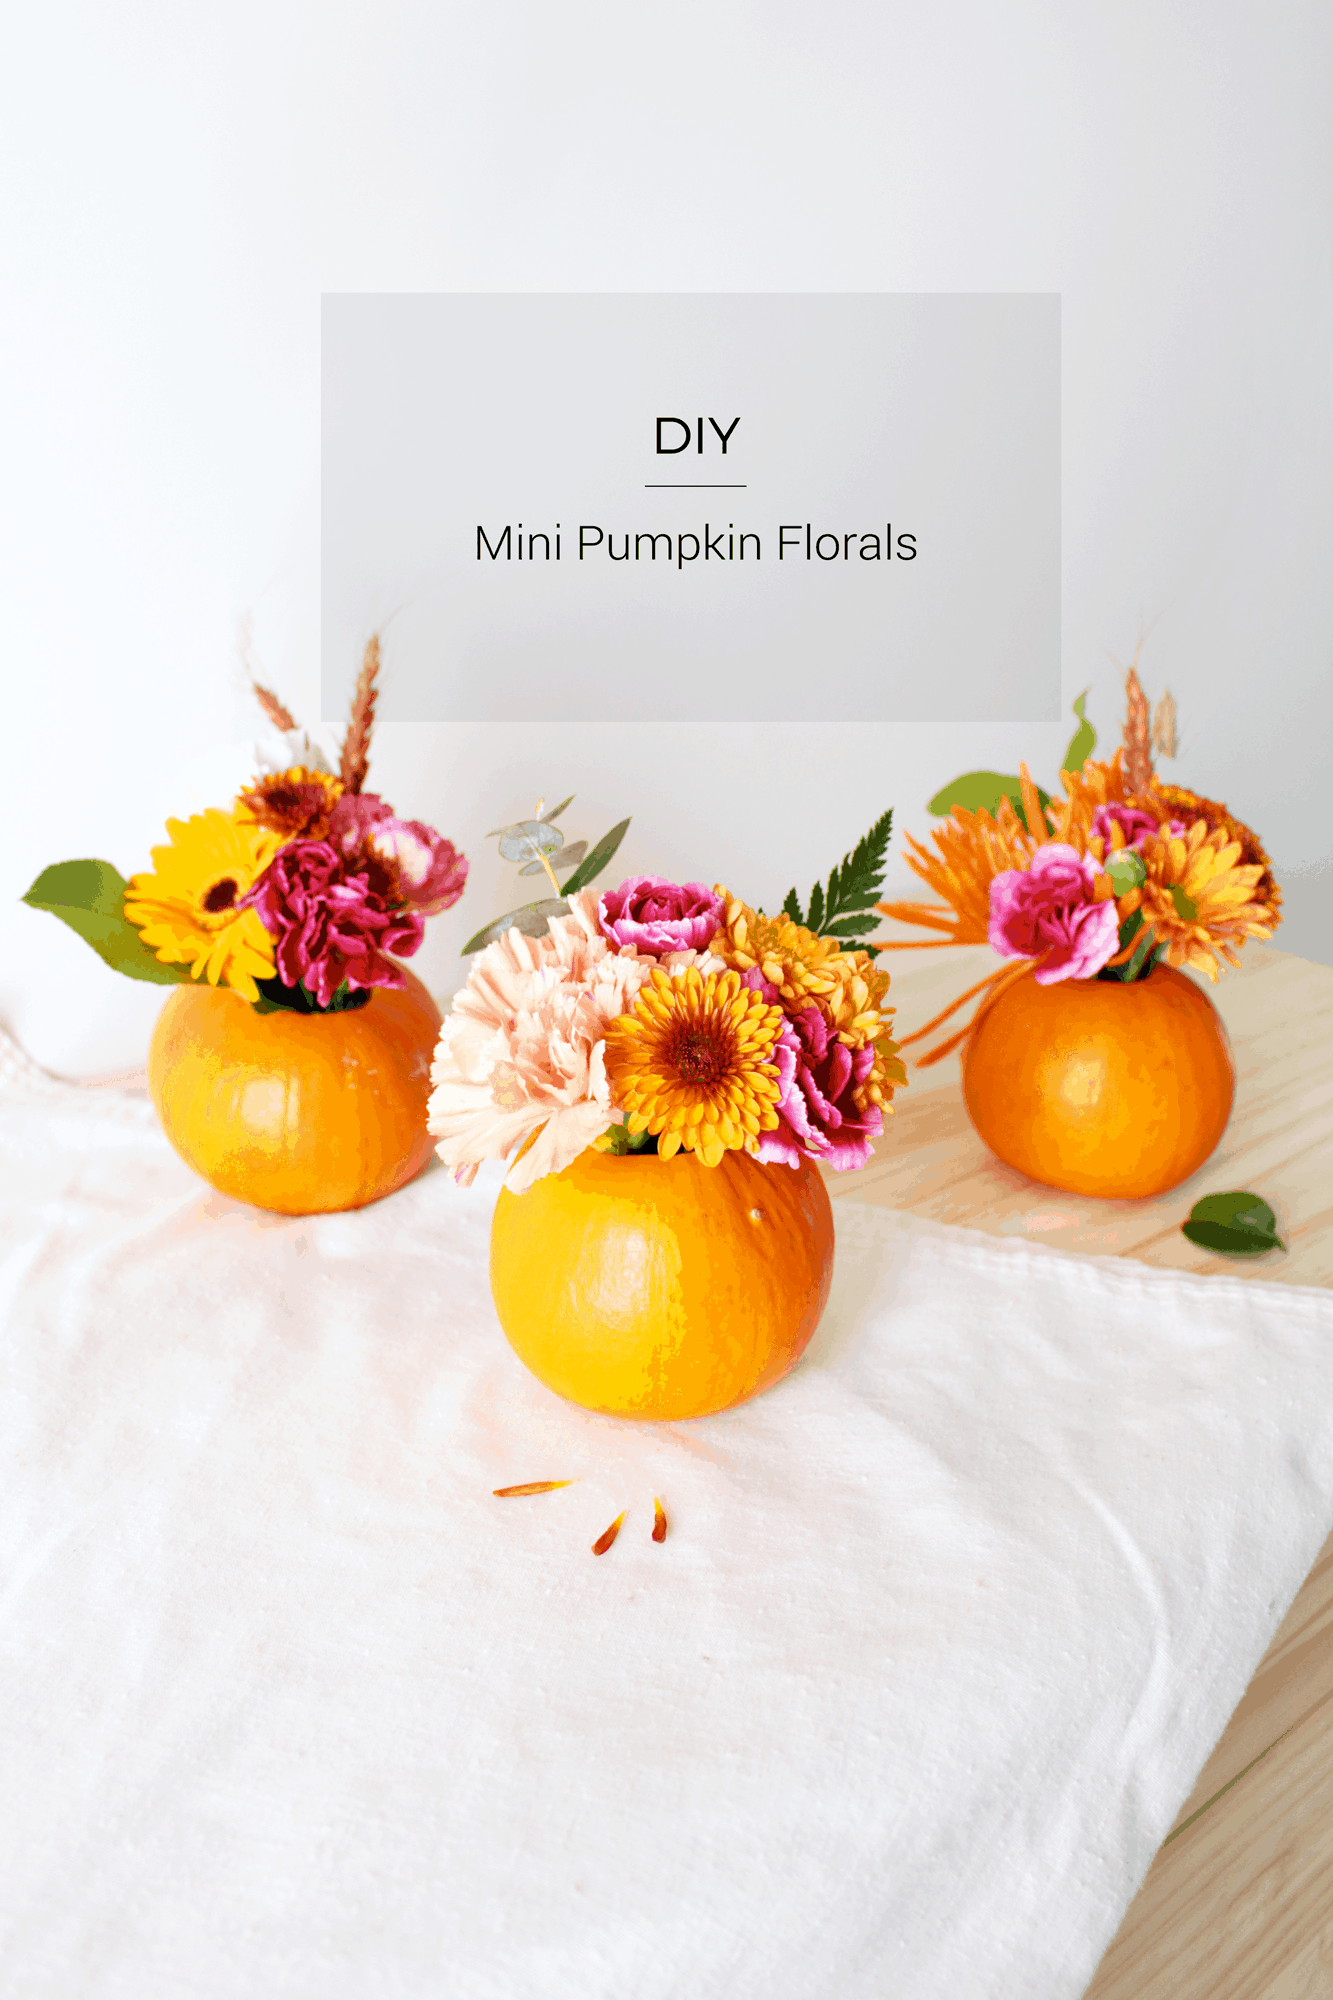 DIY Mini Pumpkin Florals